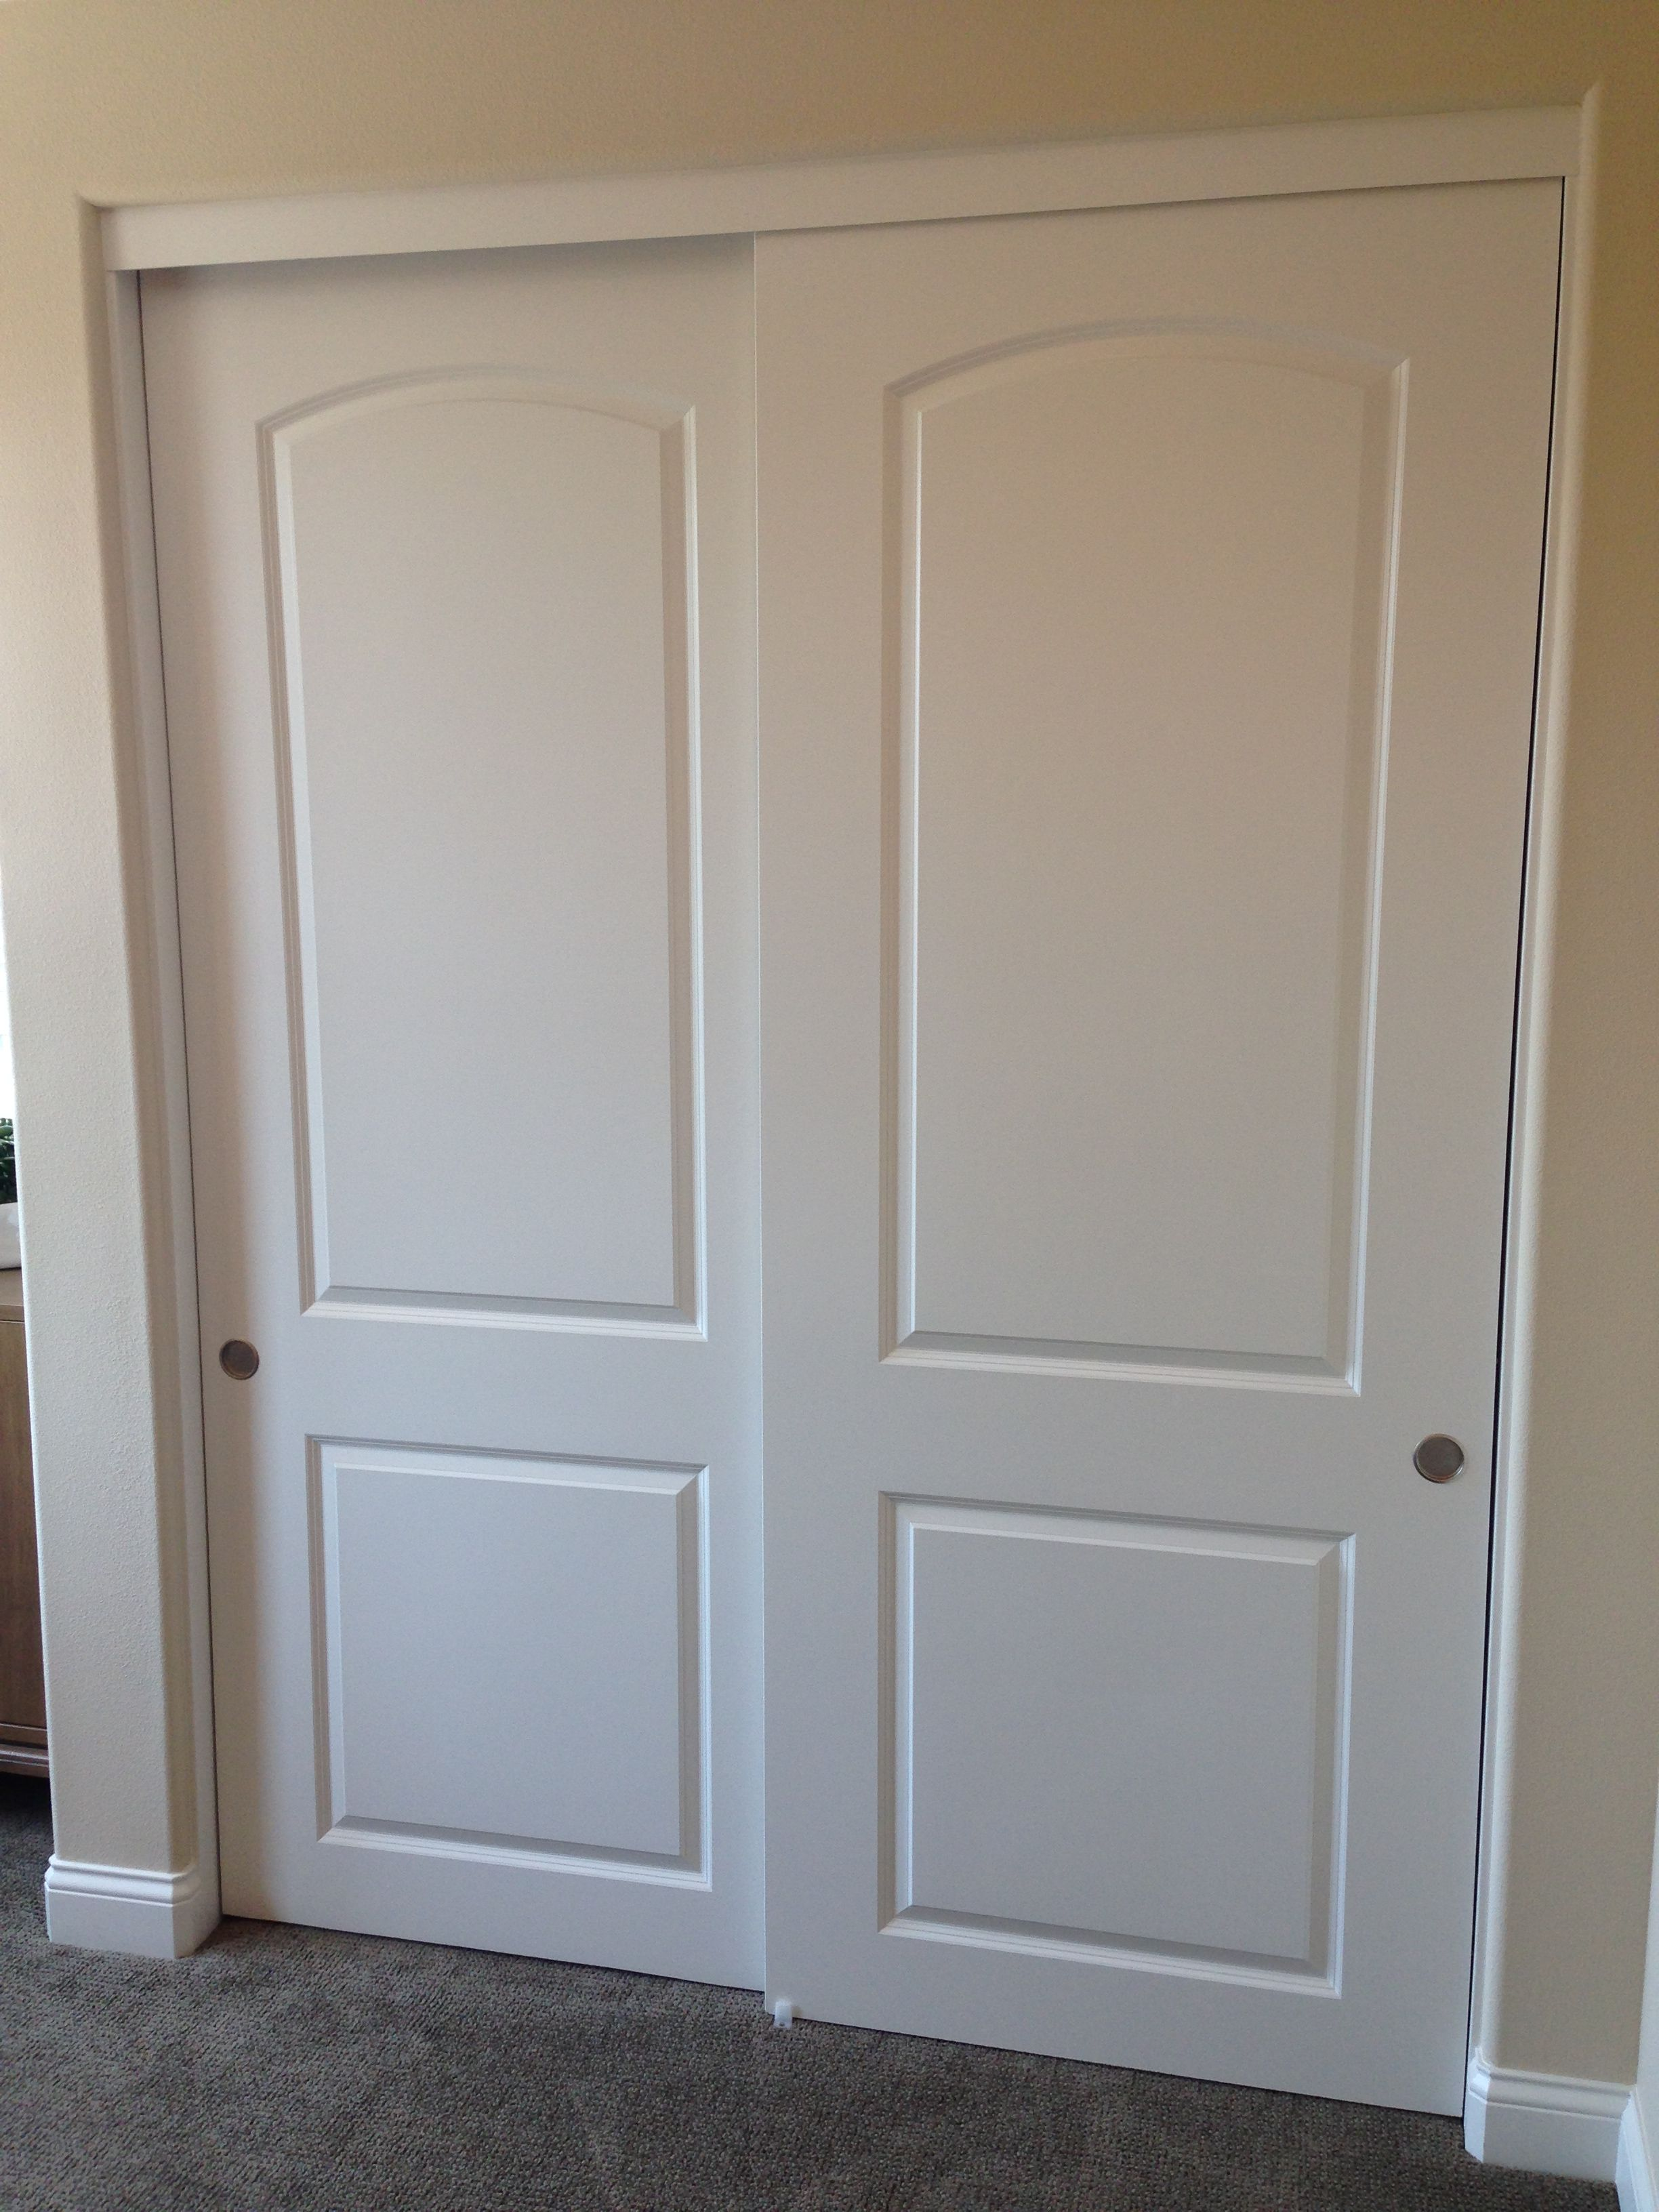 2 Panel Track Hollow Core Mdf Byp Sliding Closet Doors With J Includes Brushed Silver Finger Pulls And Floor Guide